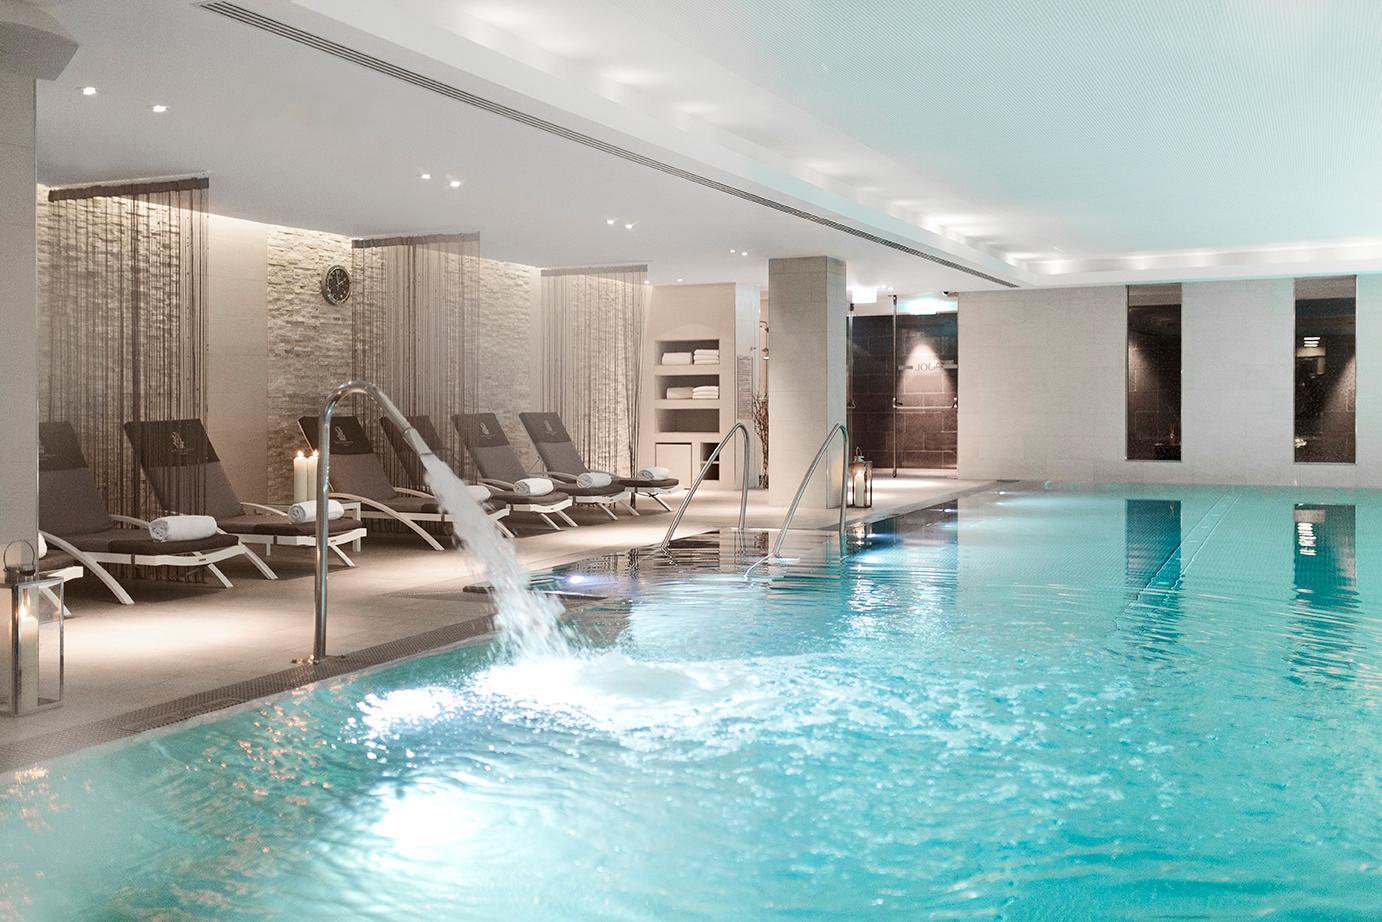 The 1000 sqm The Ritz-Carlton Spa feature one of the largest indoor pools of the entire city